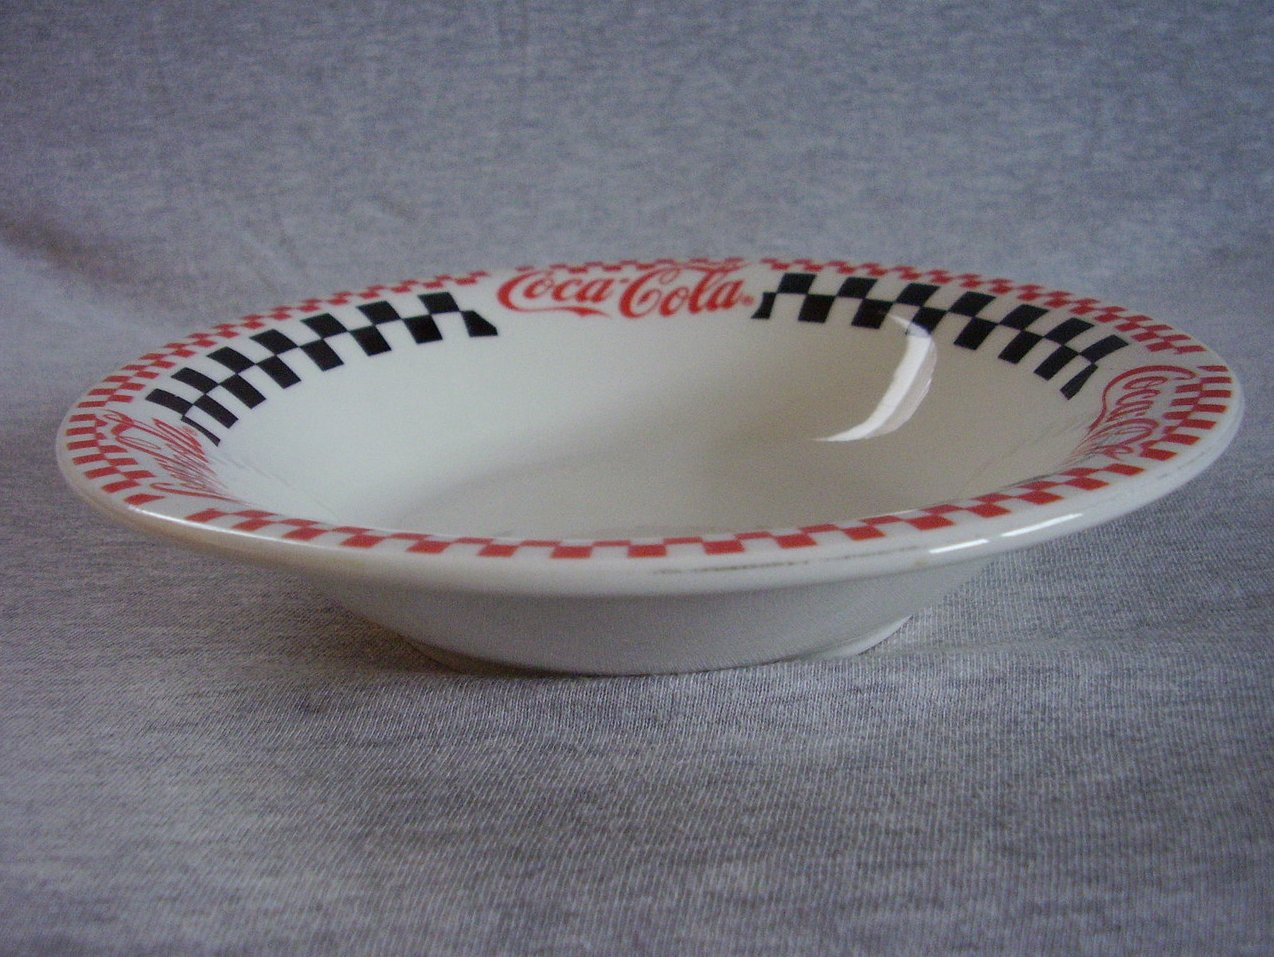 Gibson Coca Cola Coupe Soup Bowl Red Black Checkers